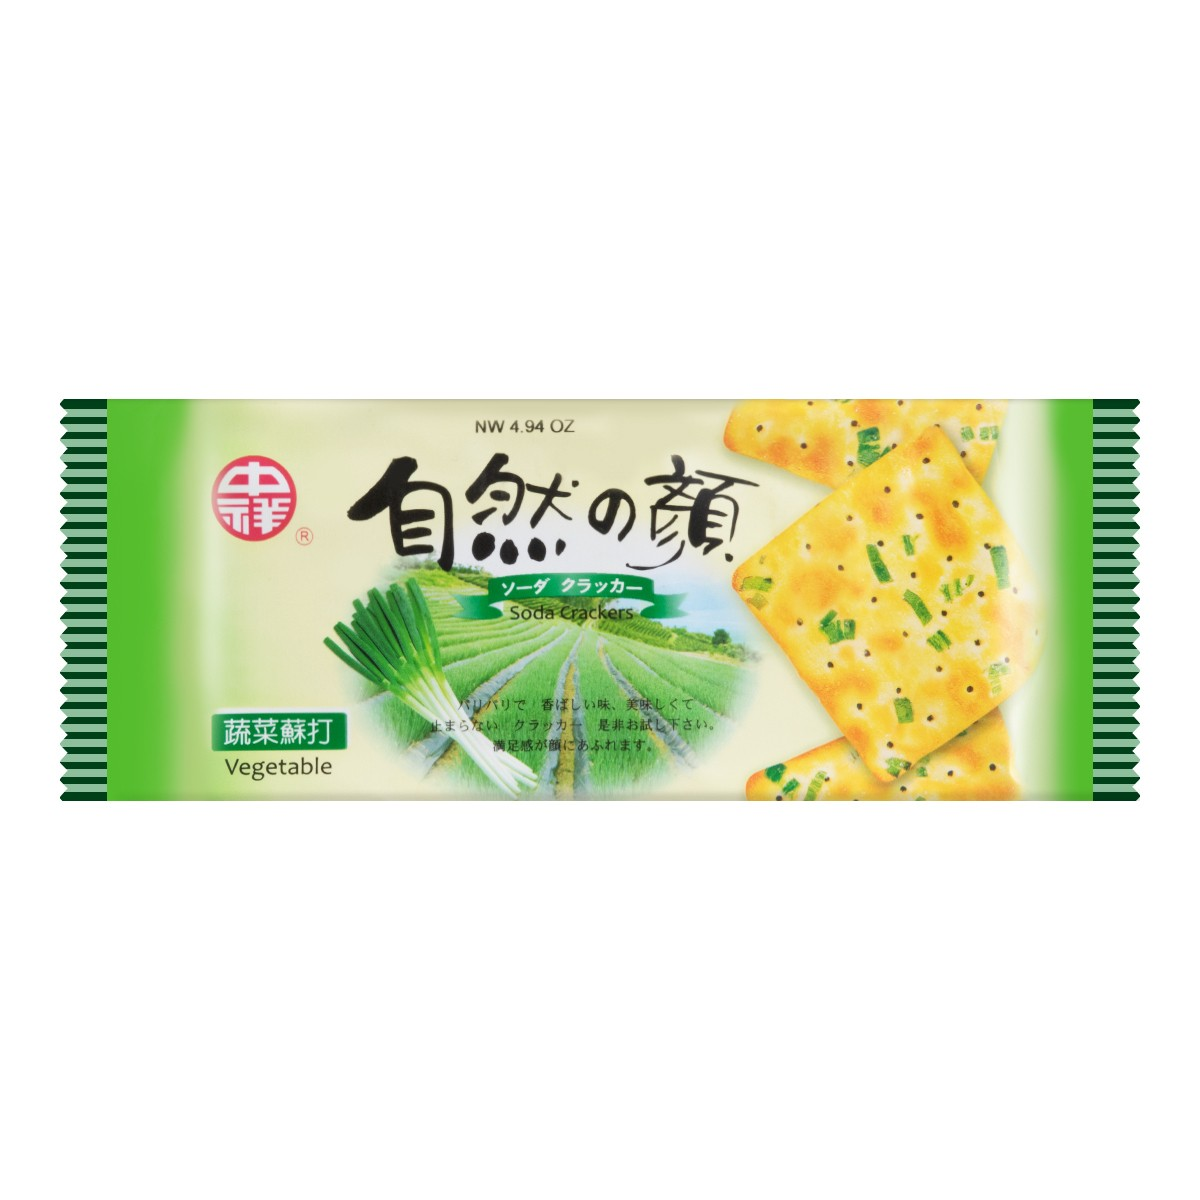 ZHONGXIANG Green Onion Soda Cracker   140g